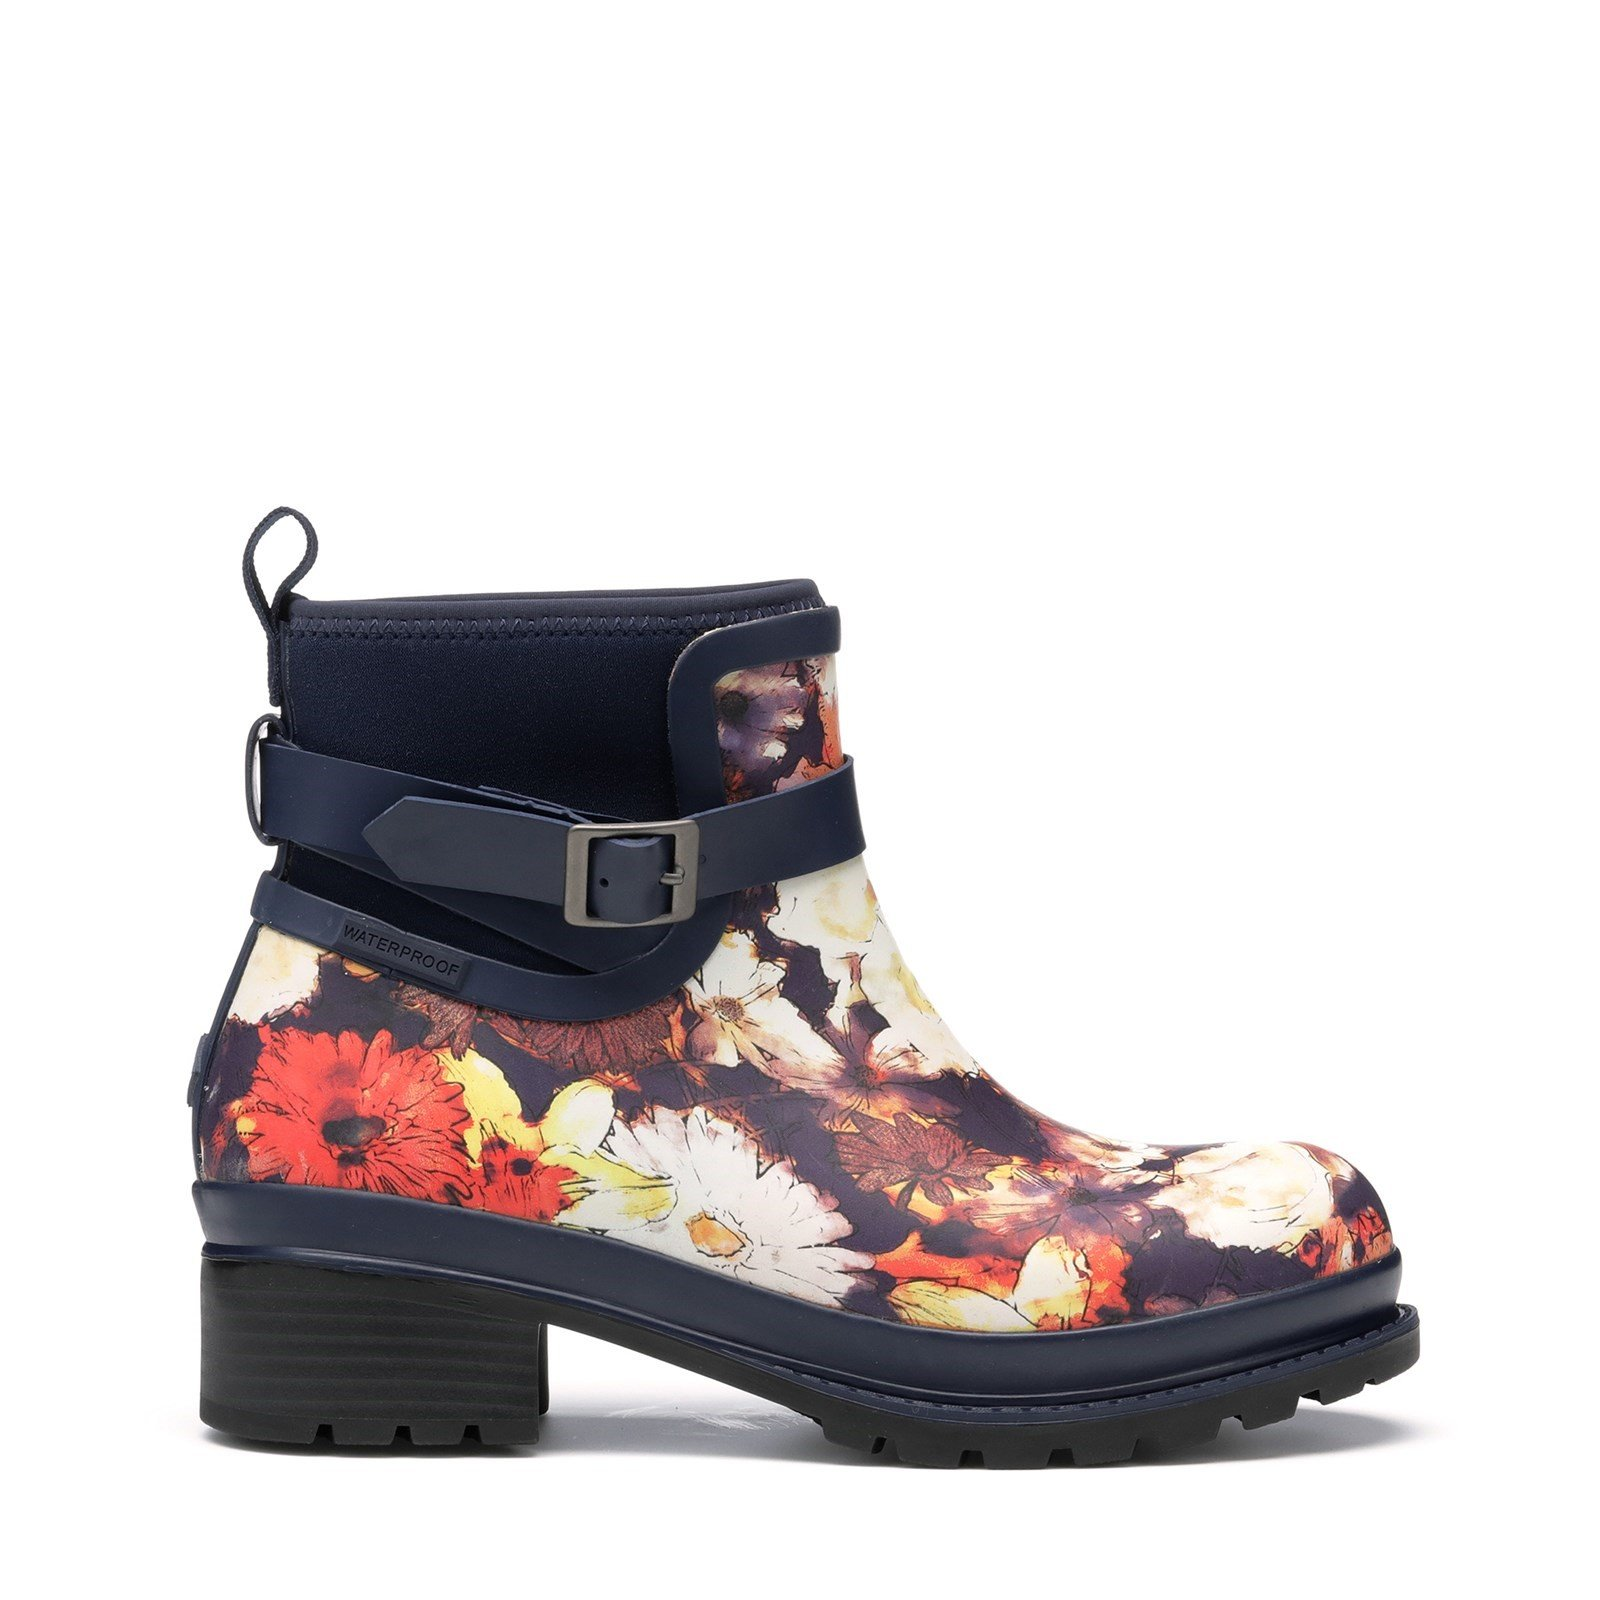 Muck Boots Women's Liberty Rubber Ankle Boots Various Colours 31816 - Navy Floral Print 4